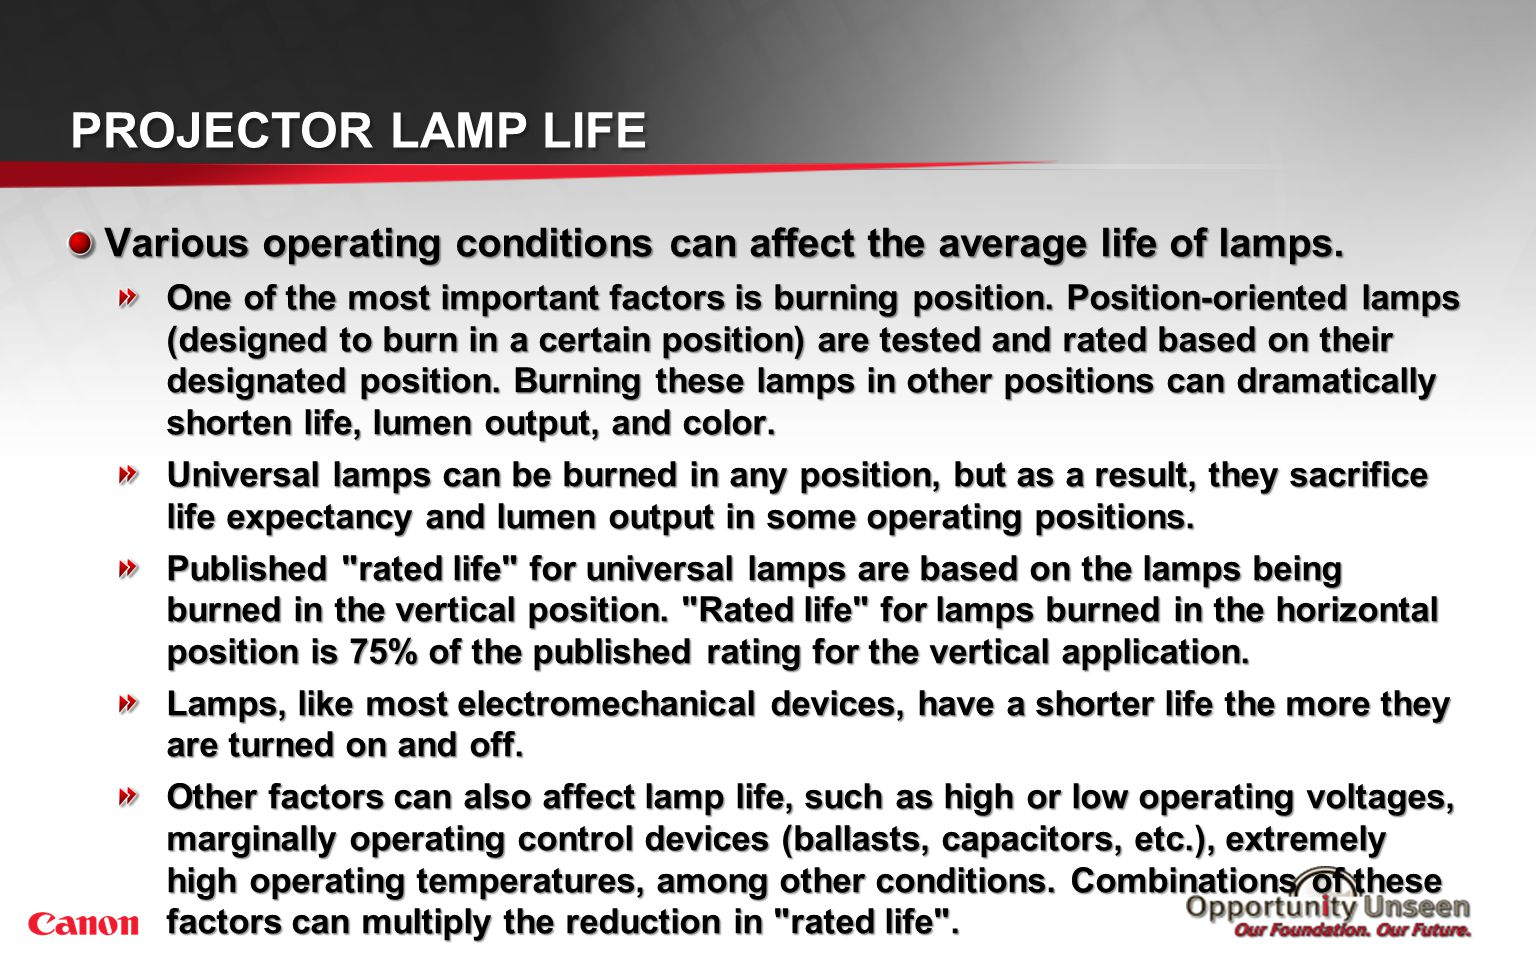 PROJECTOR LAMP LIFE Various operating conditions can affect the average life of lamps. One of the most important factors is burning position. Position